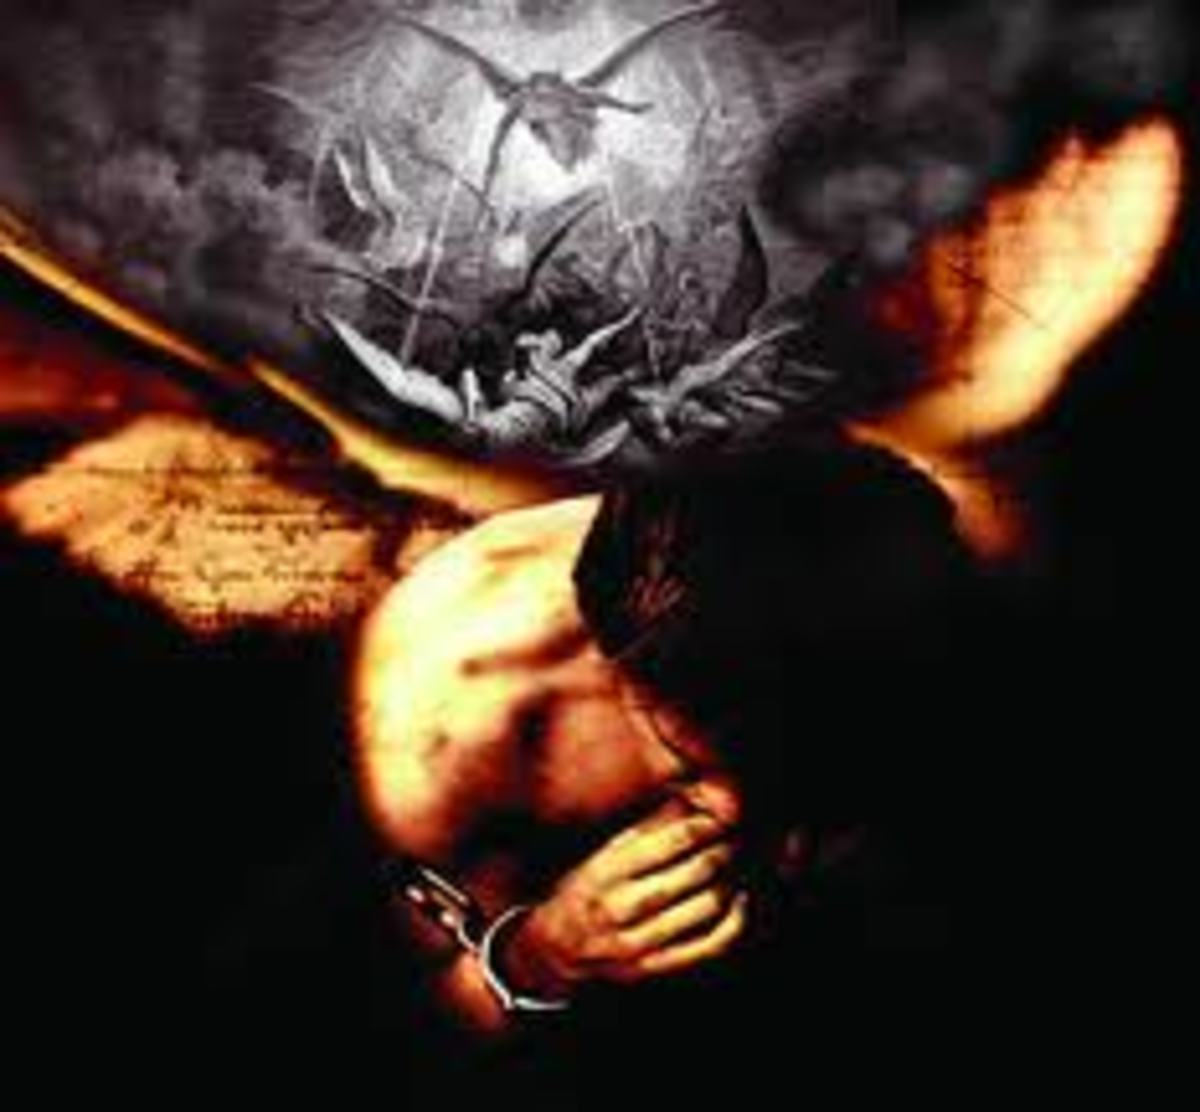 The Nephilim were the children of fallen angels and human women. The women often died giving birth to these evil beings.